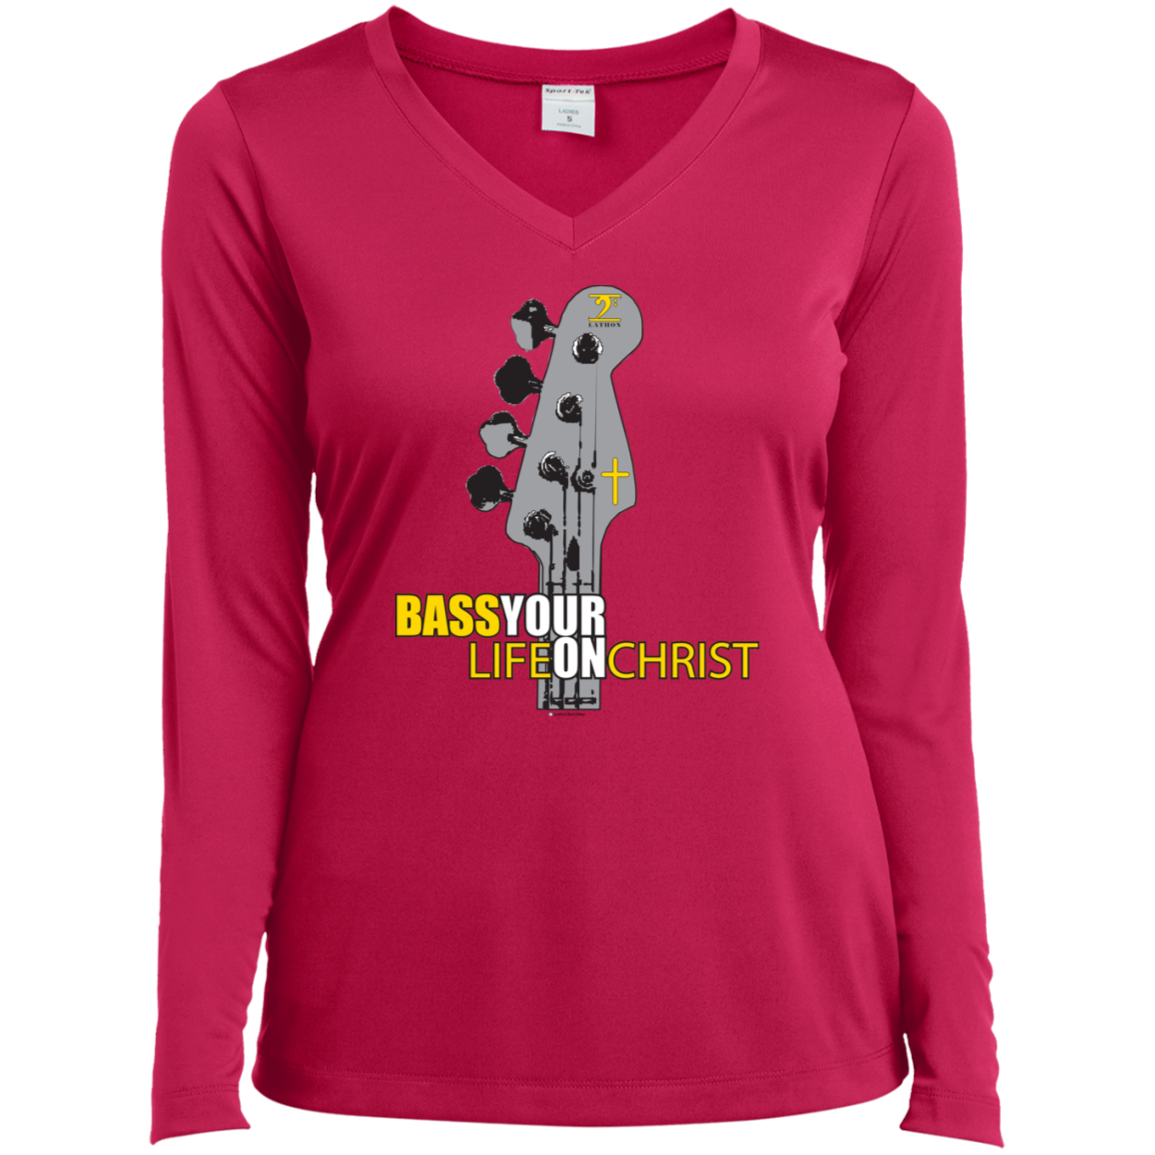 BASS YOUR LIFE ON CHRIST Ladies' LS Performance V-Neck T-Shirt - Lathon Bass Wear